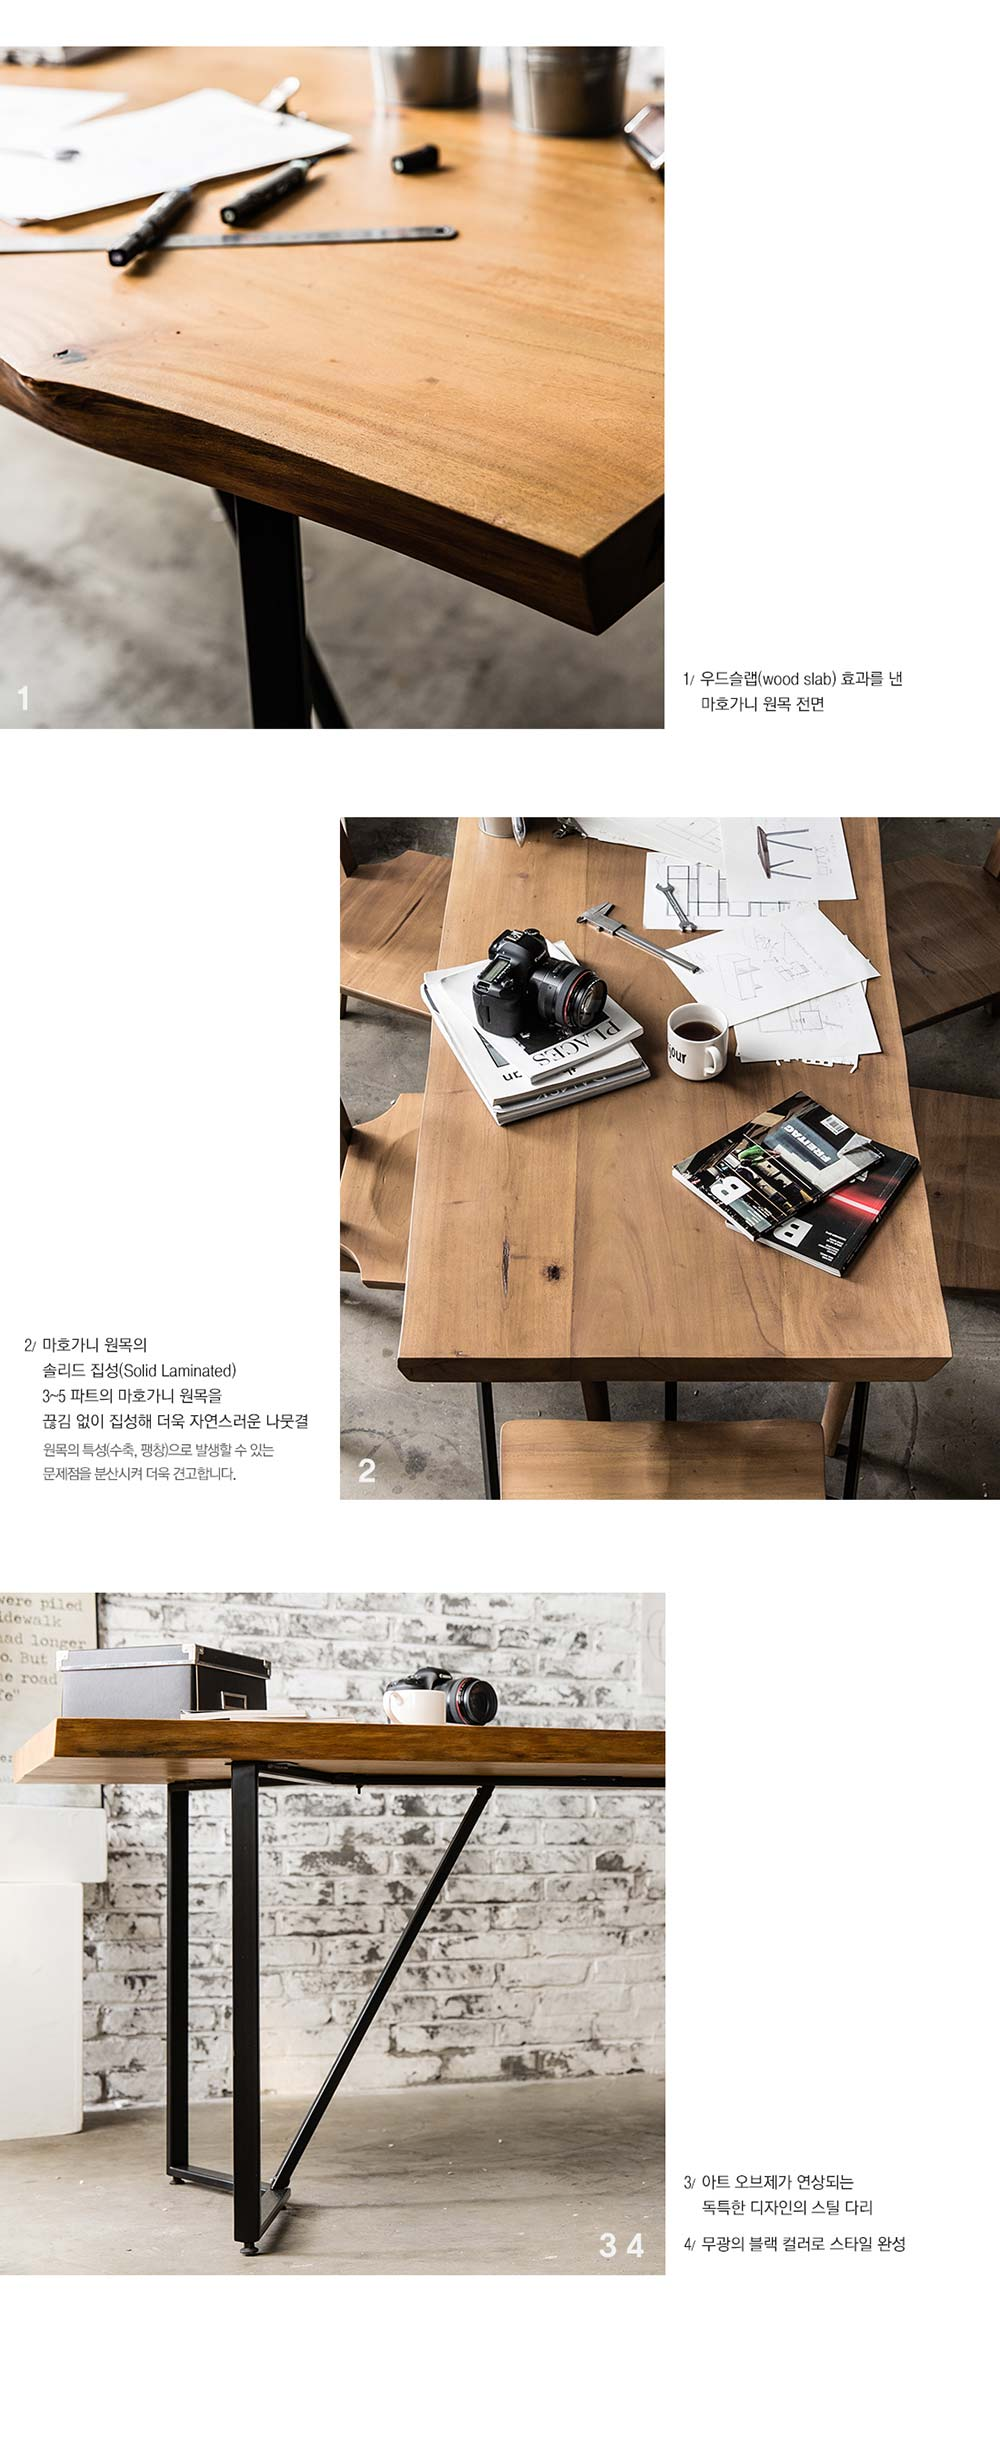 Londoner_Kinfolk_Industrial_Dining_Table_1800_(Woodslab)_Online_Furniture_Singapore_Scenery_2_by_born_in_colour